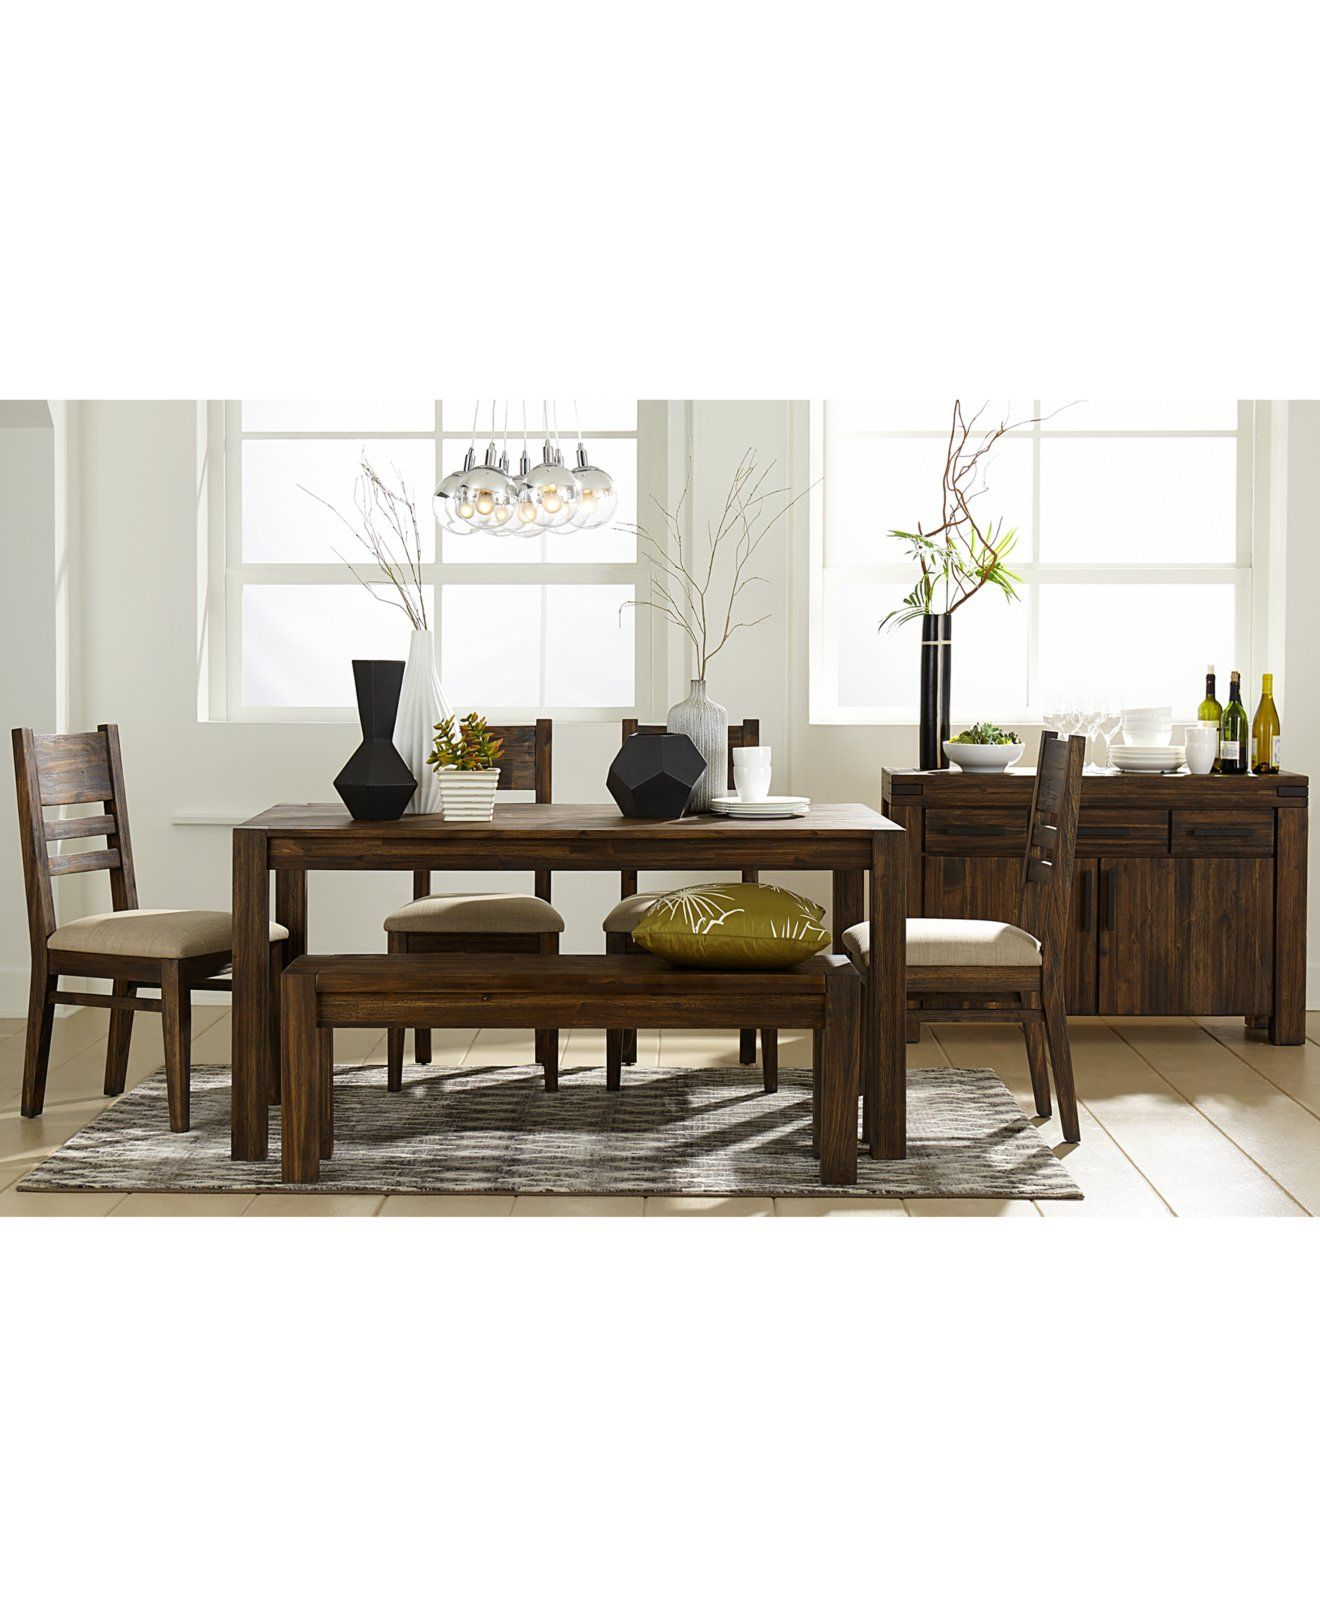 Avondale Dining Room Furniture Collection, Created for